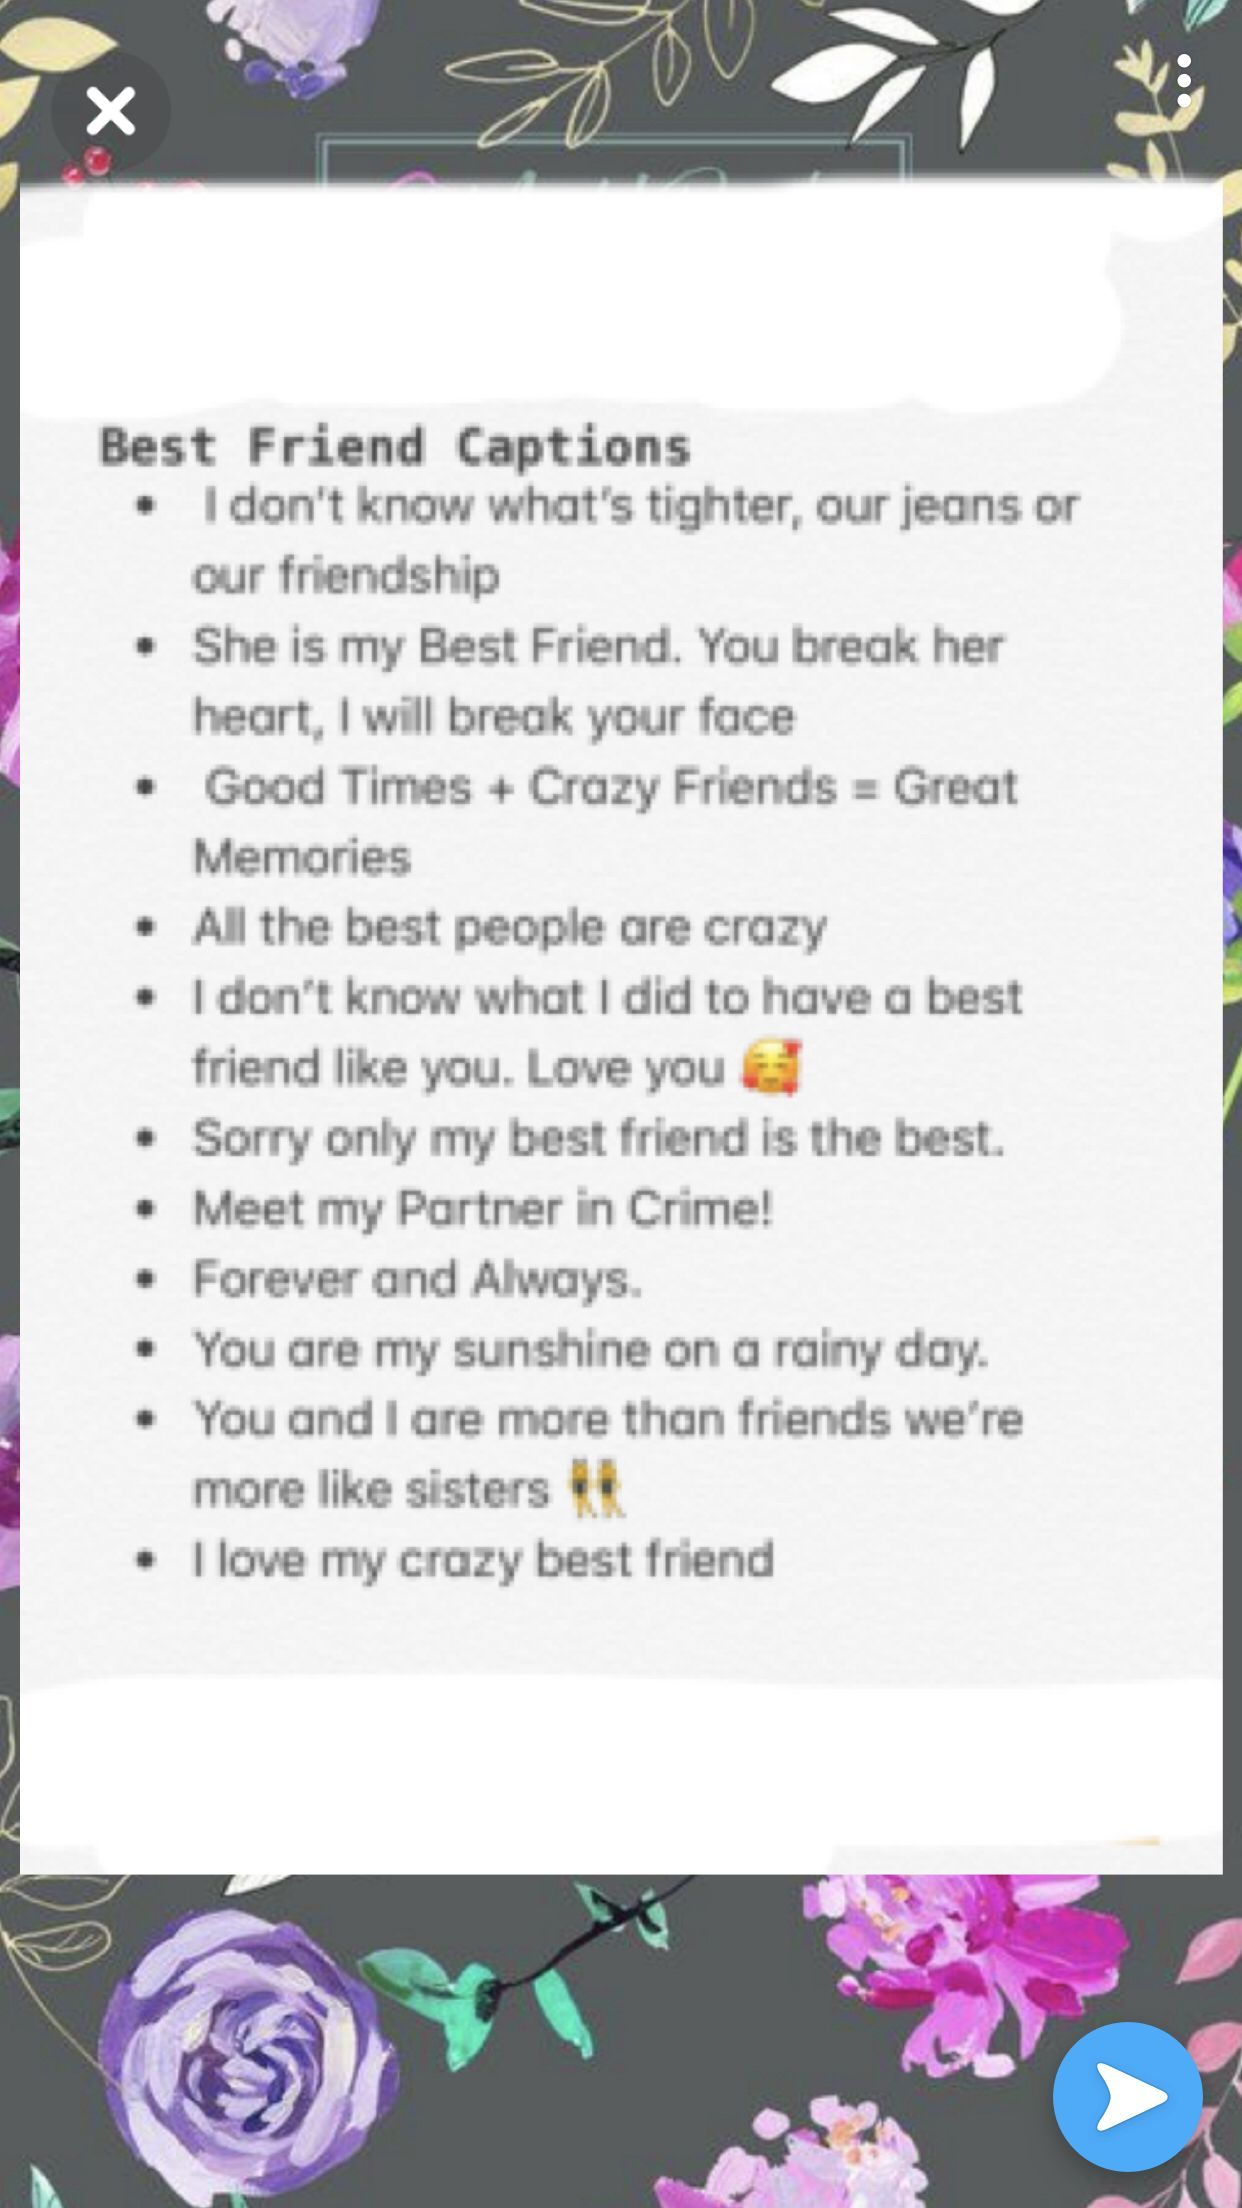 Finest good friend captions in 2020 | Instagram quotes ...